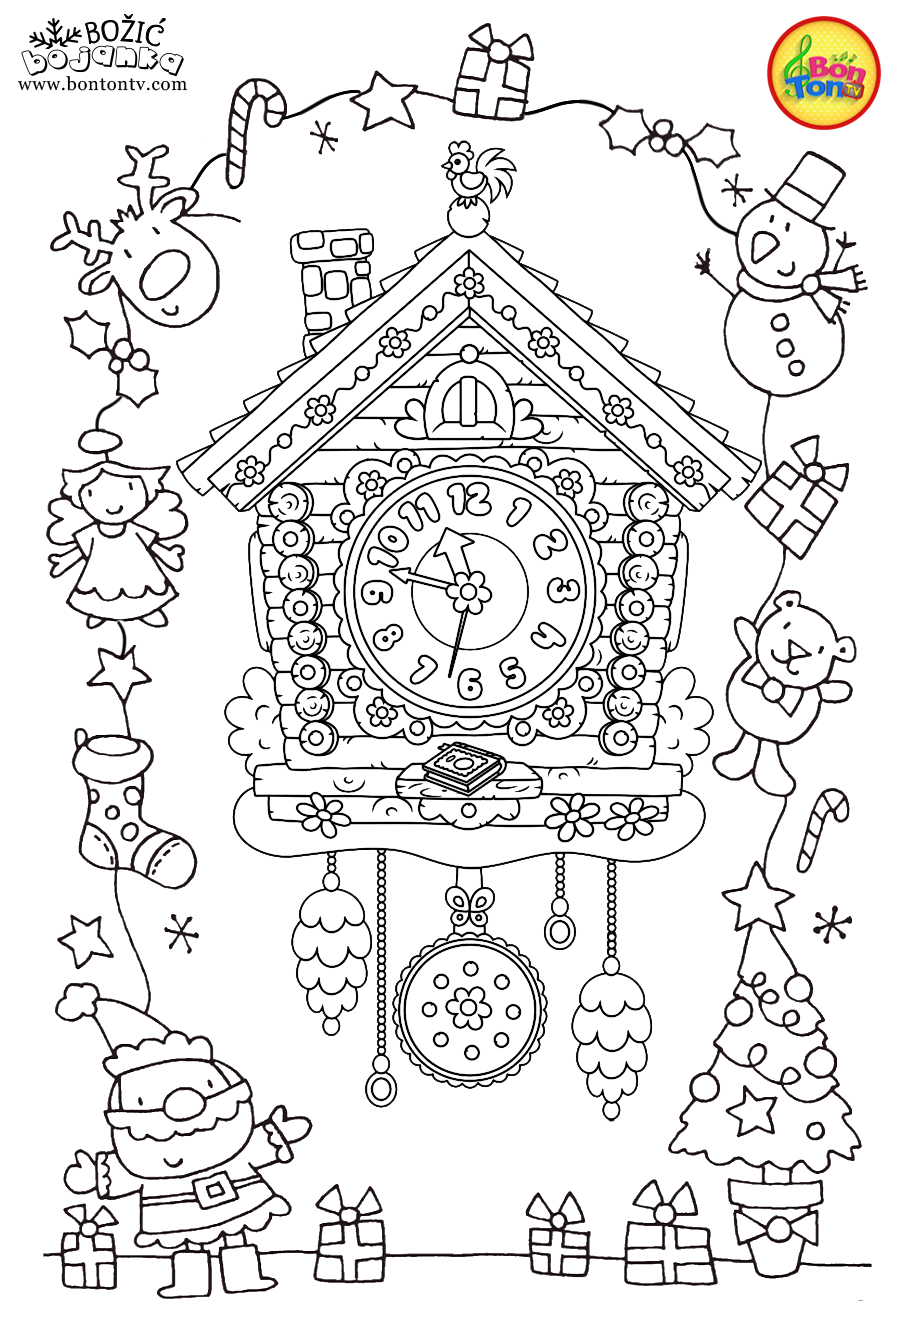 Christmas Coloring Pages - Božić bojanke za djecu - Free Printables for Kids - Christmas Tree, Cookies, Santa Claus and Snowman, Reindeers and more on BonTon TV - Coloring Books #christmas #coloringpages #coloringbooks #printables #božić #bontontv #coloringsheets